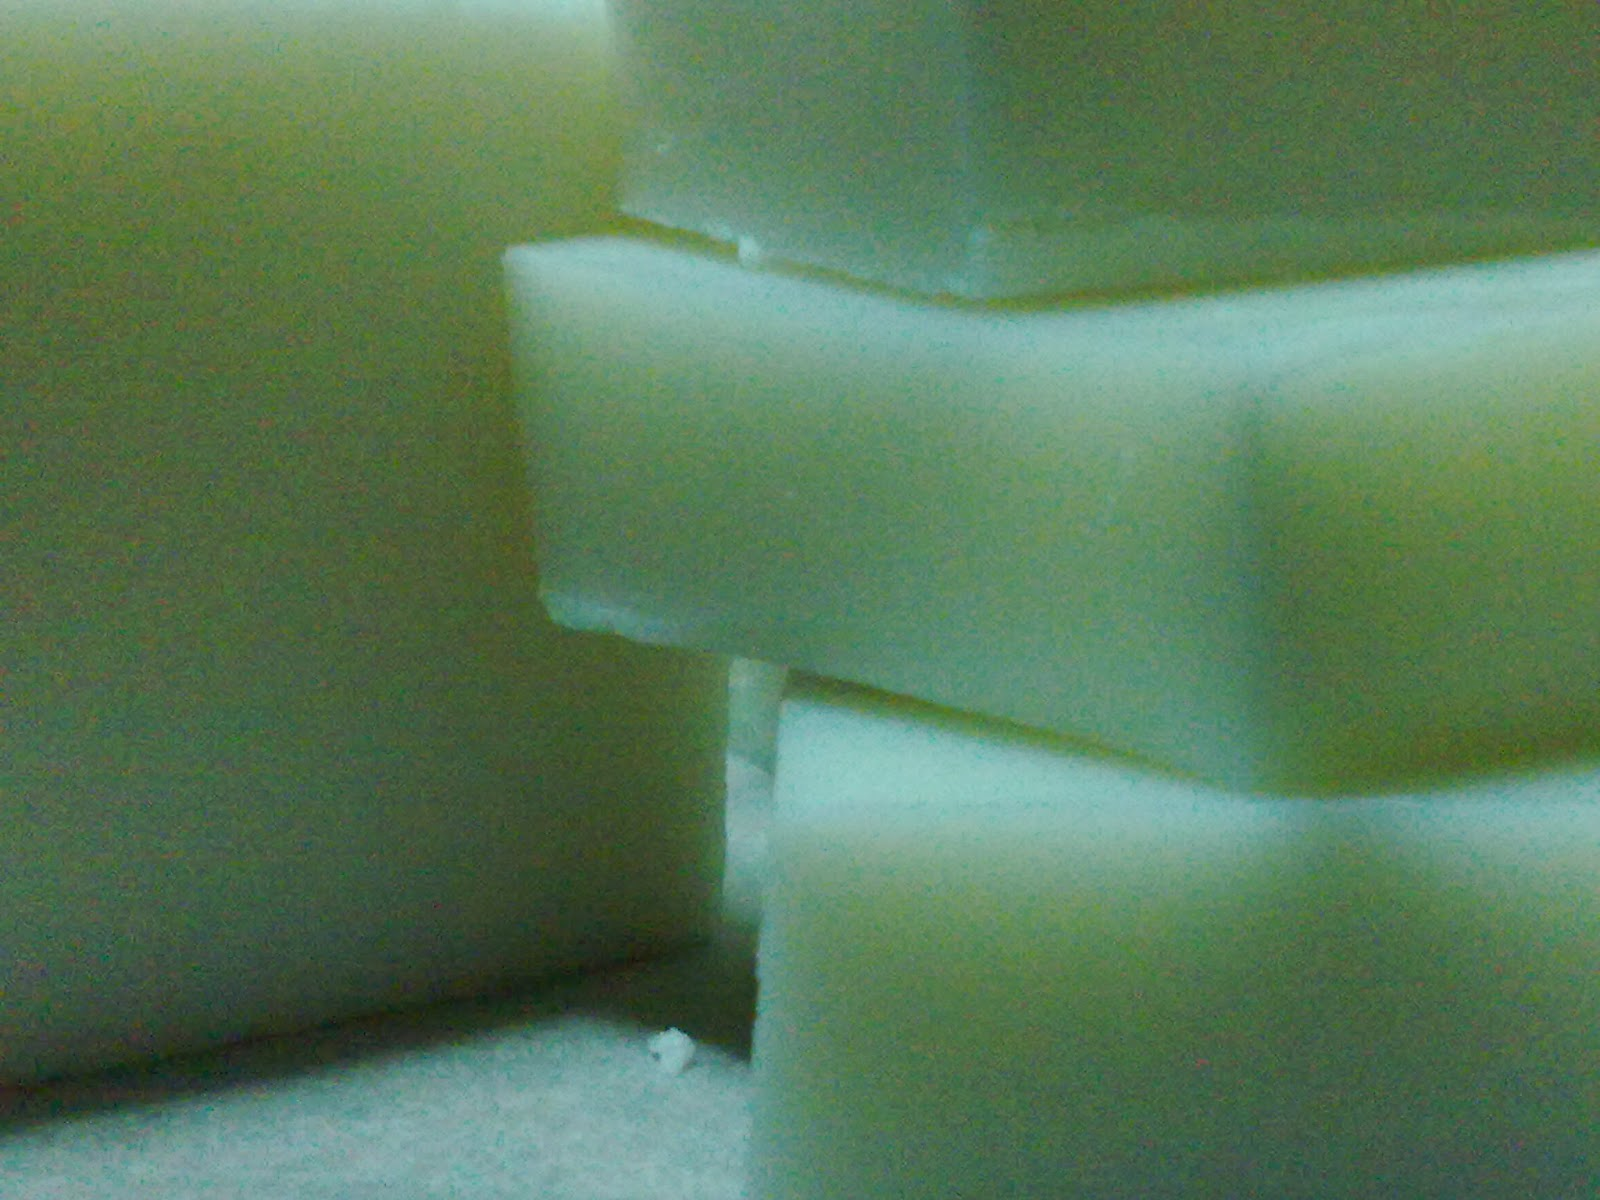 Diy Soap Without Glycerin Simple One Why Homemade Soap